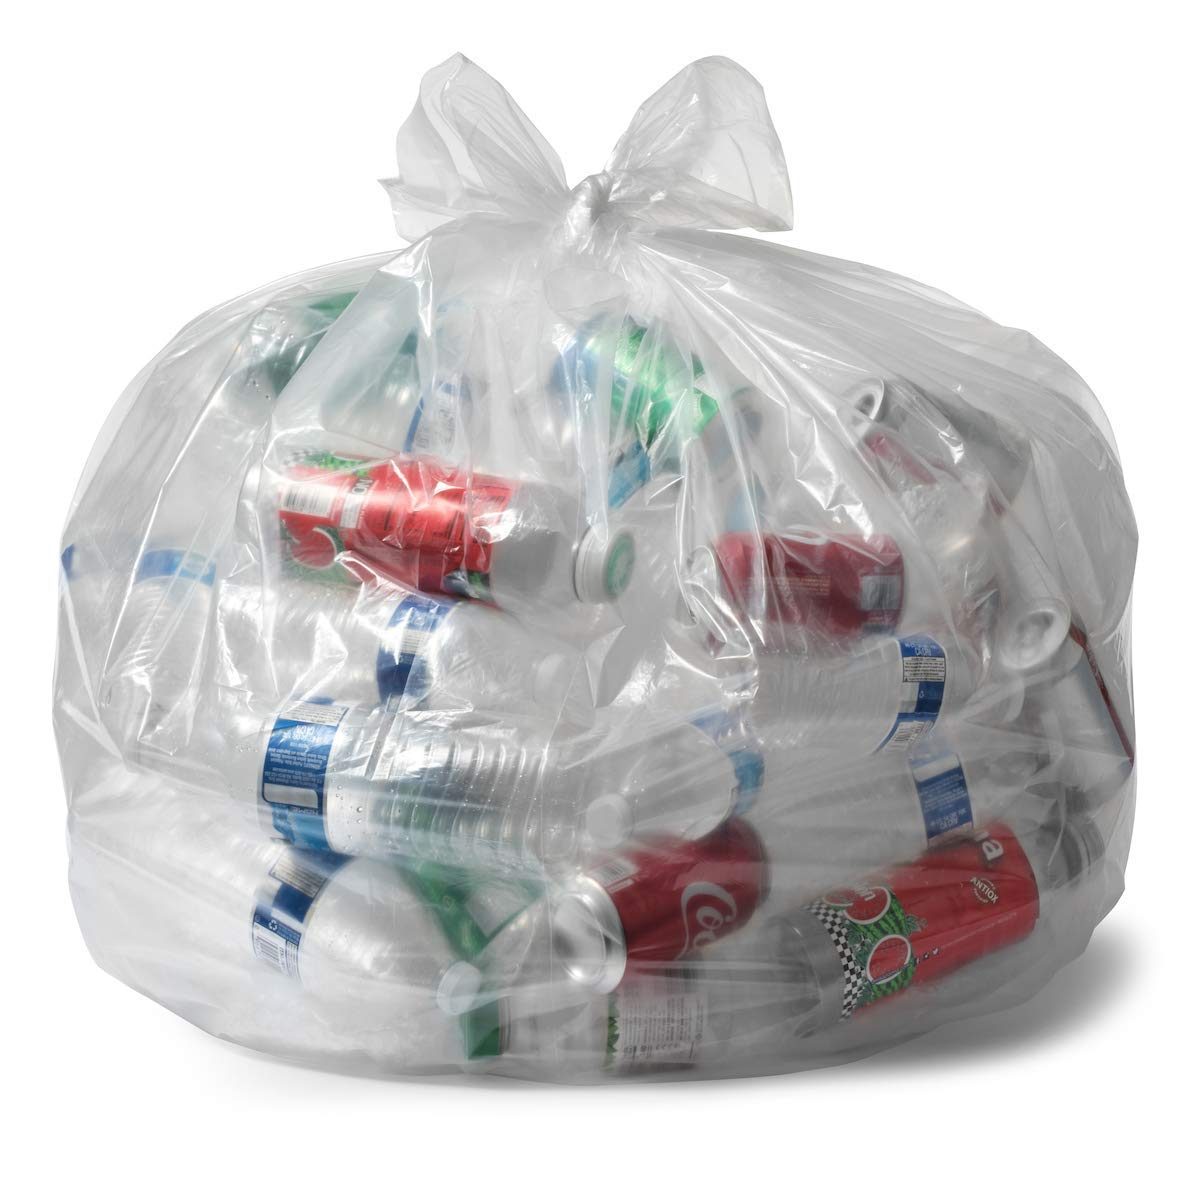 Aluf Plastics 20-30 Gallon Clear Trash Bags - (Huge 100 Pack) - 30